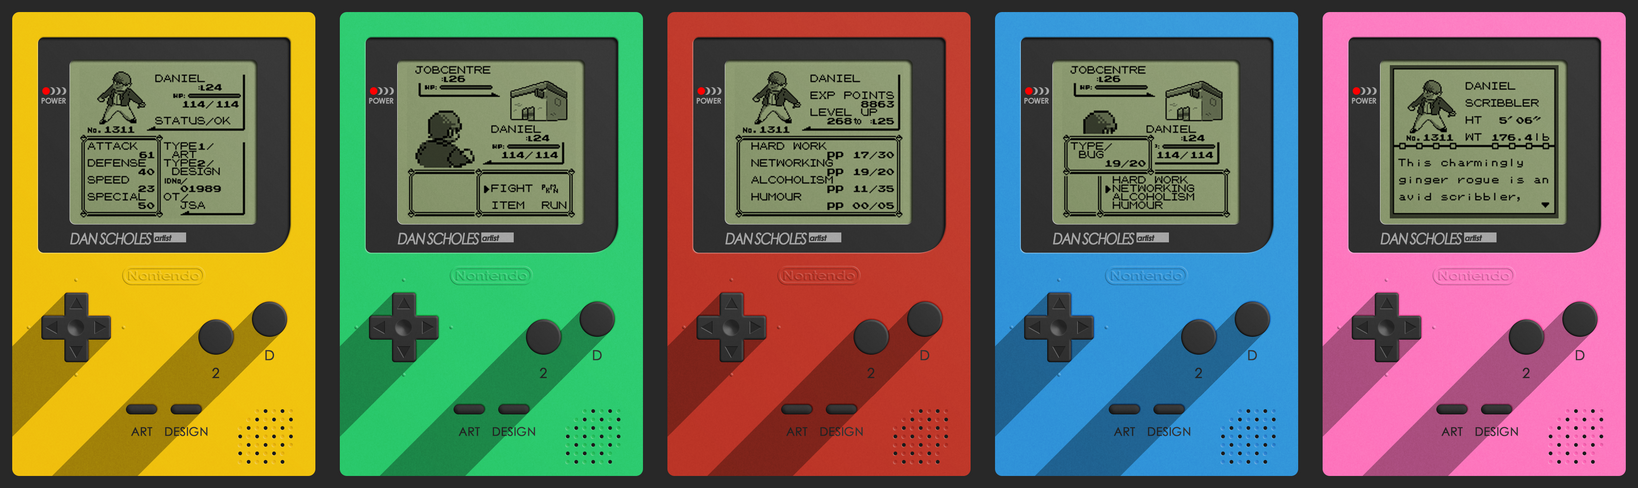 Game boy business card set by pencil x paper on deviantart game boy business card set by pencil x paper reheart Image collections